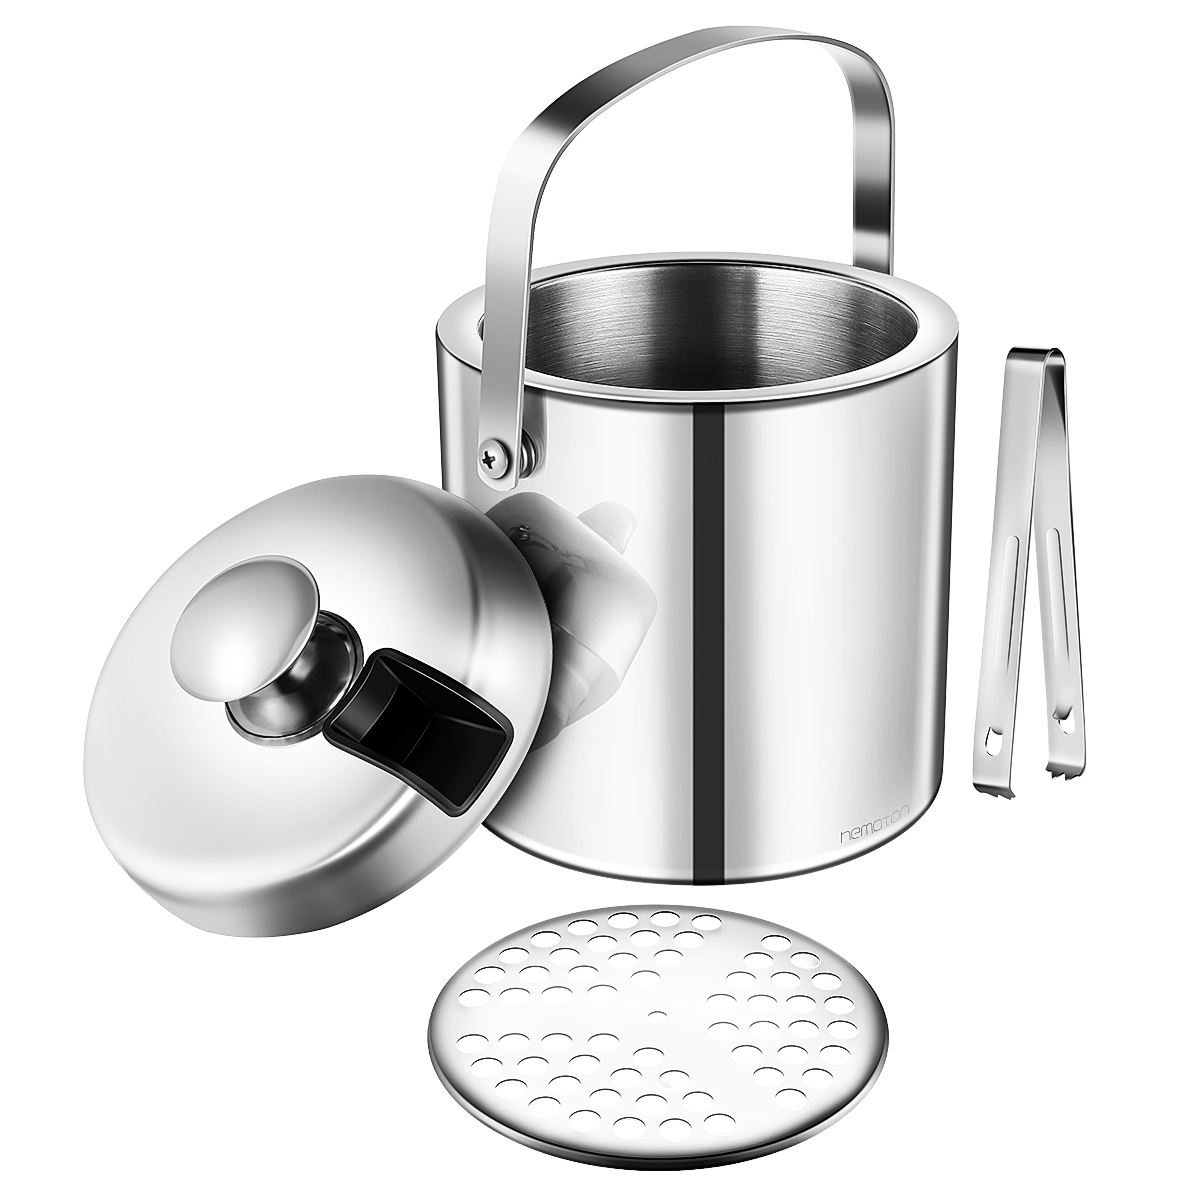 Hemoton 1.3L Ice Bucket with Lid and Tongs Stainless Steel Double Wall Home kitchen Bar Accessory Party Outdoor picnic Gift Set